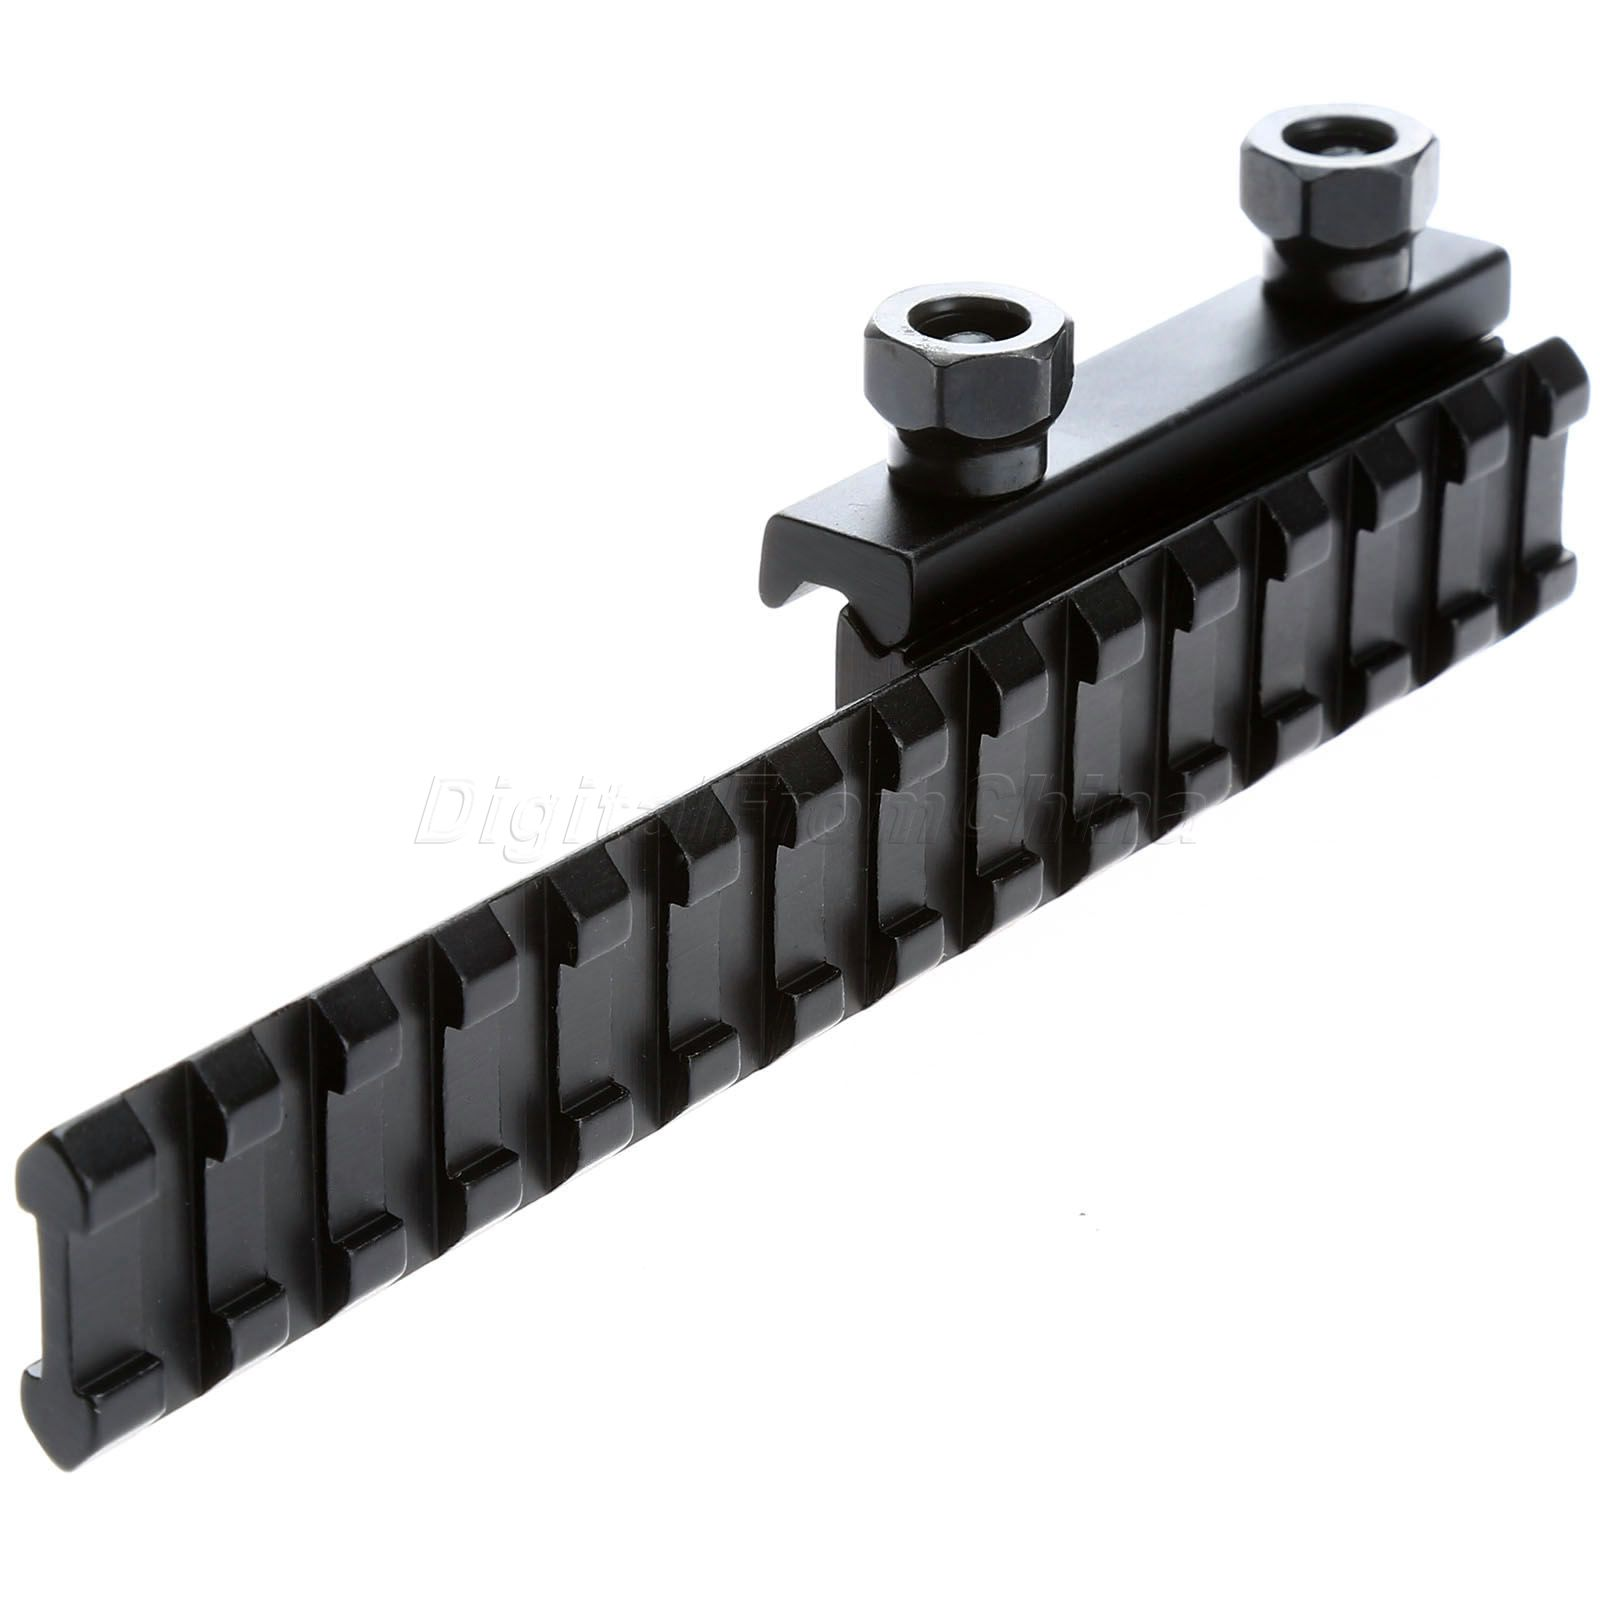 Tactical Quick Detach Riser Scope Rail Mount Fits Weaver Picatinny Rails